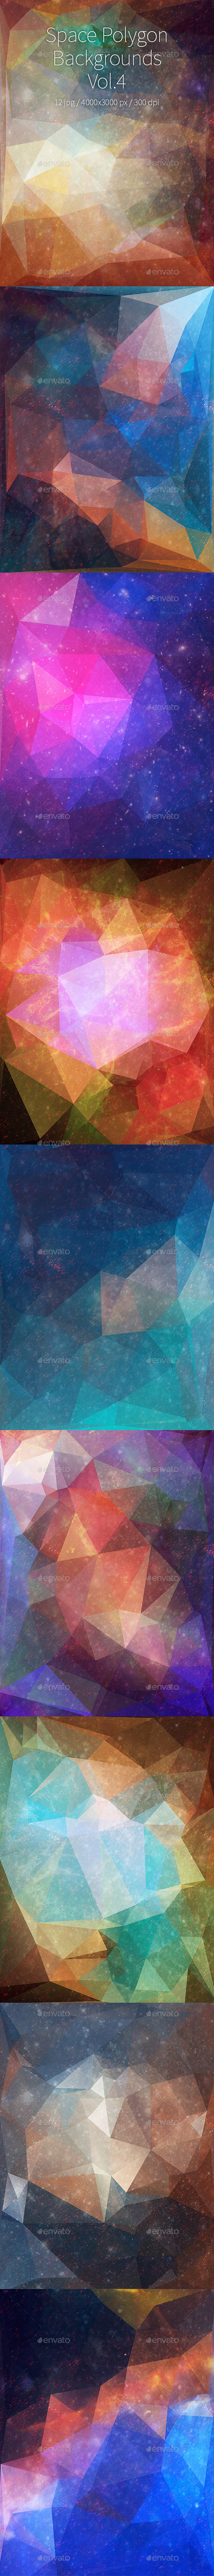 GraphicRiver Space Polygon Backgrounds Vol.4 11314472